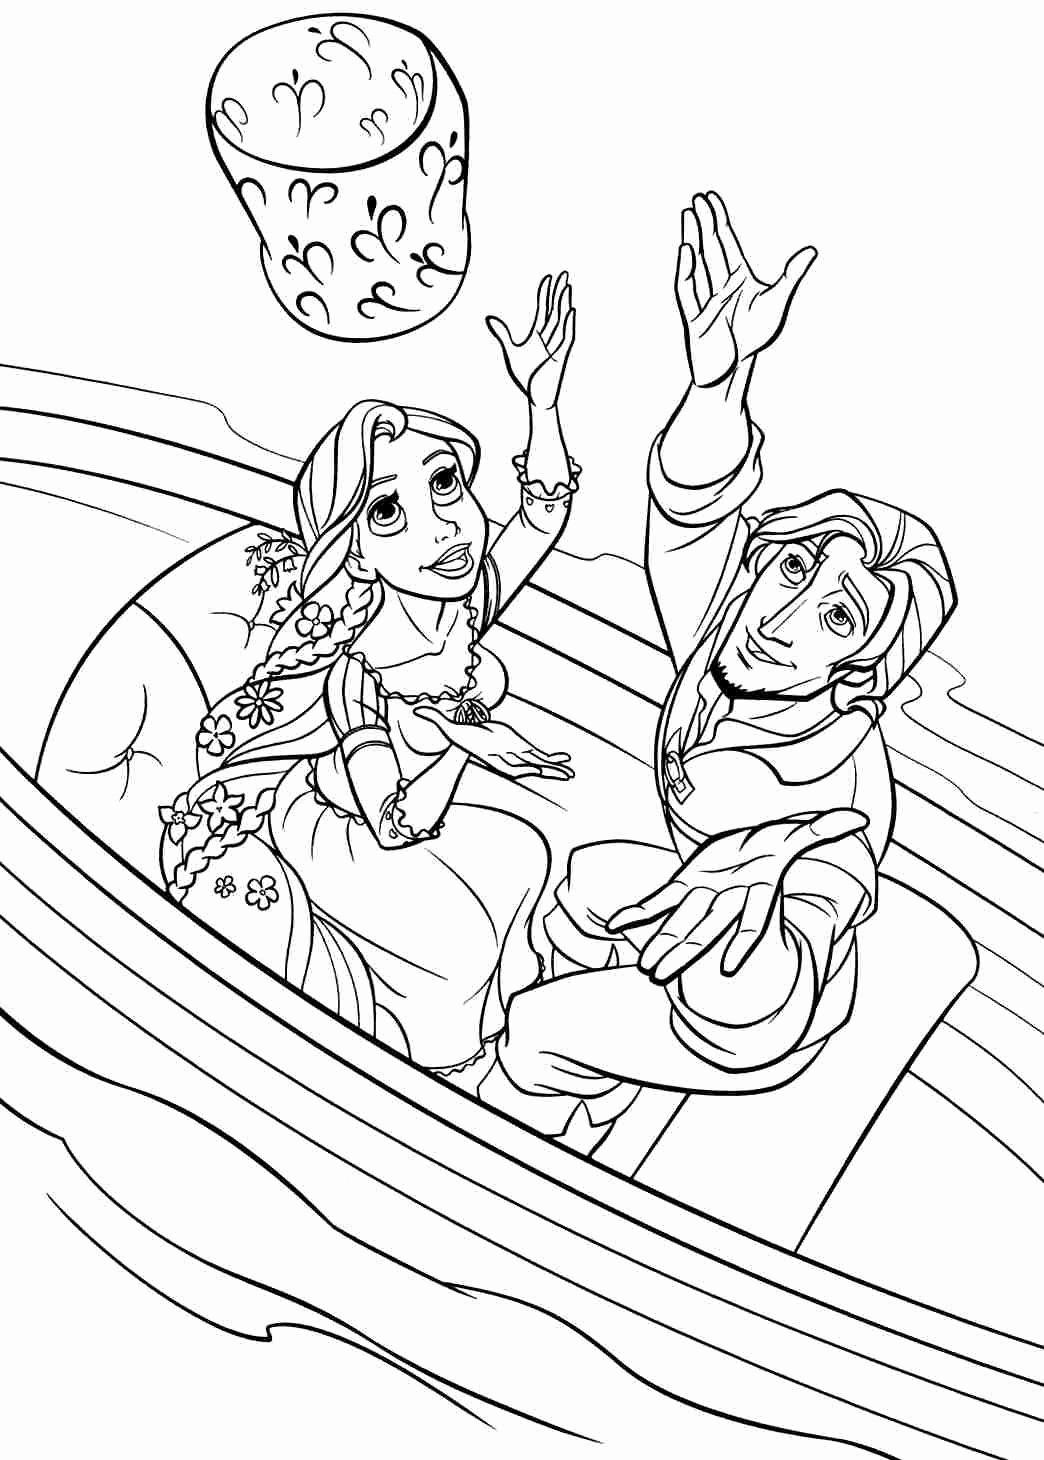 Disney Ripansl Coloring Pages For Kids In 2020 Rapunzel Coloring Pages Tangled Coloring Pages Mermaid Coloring Pages